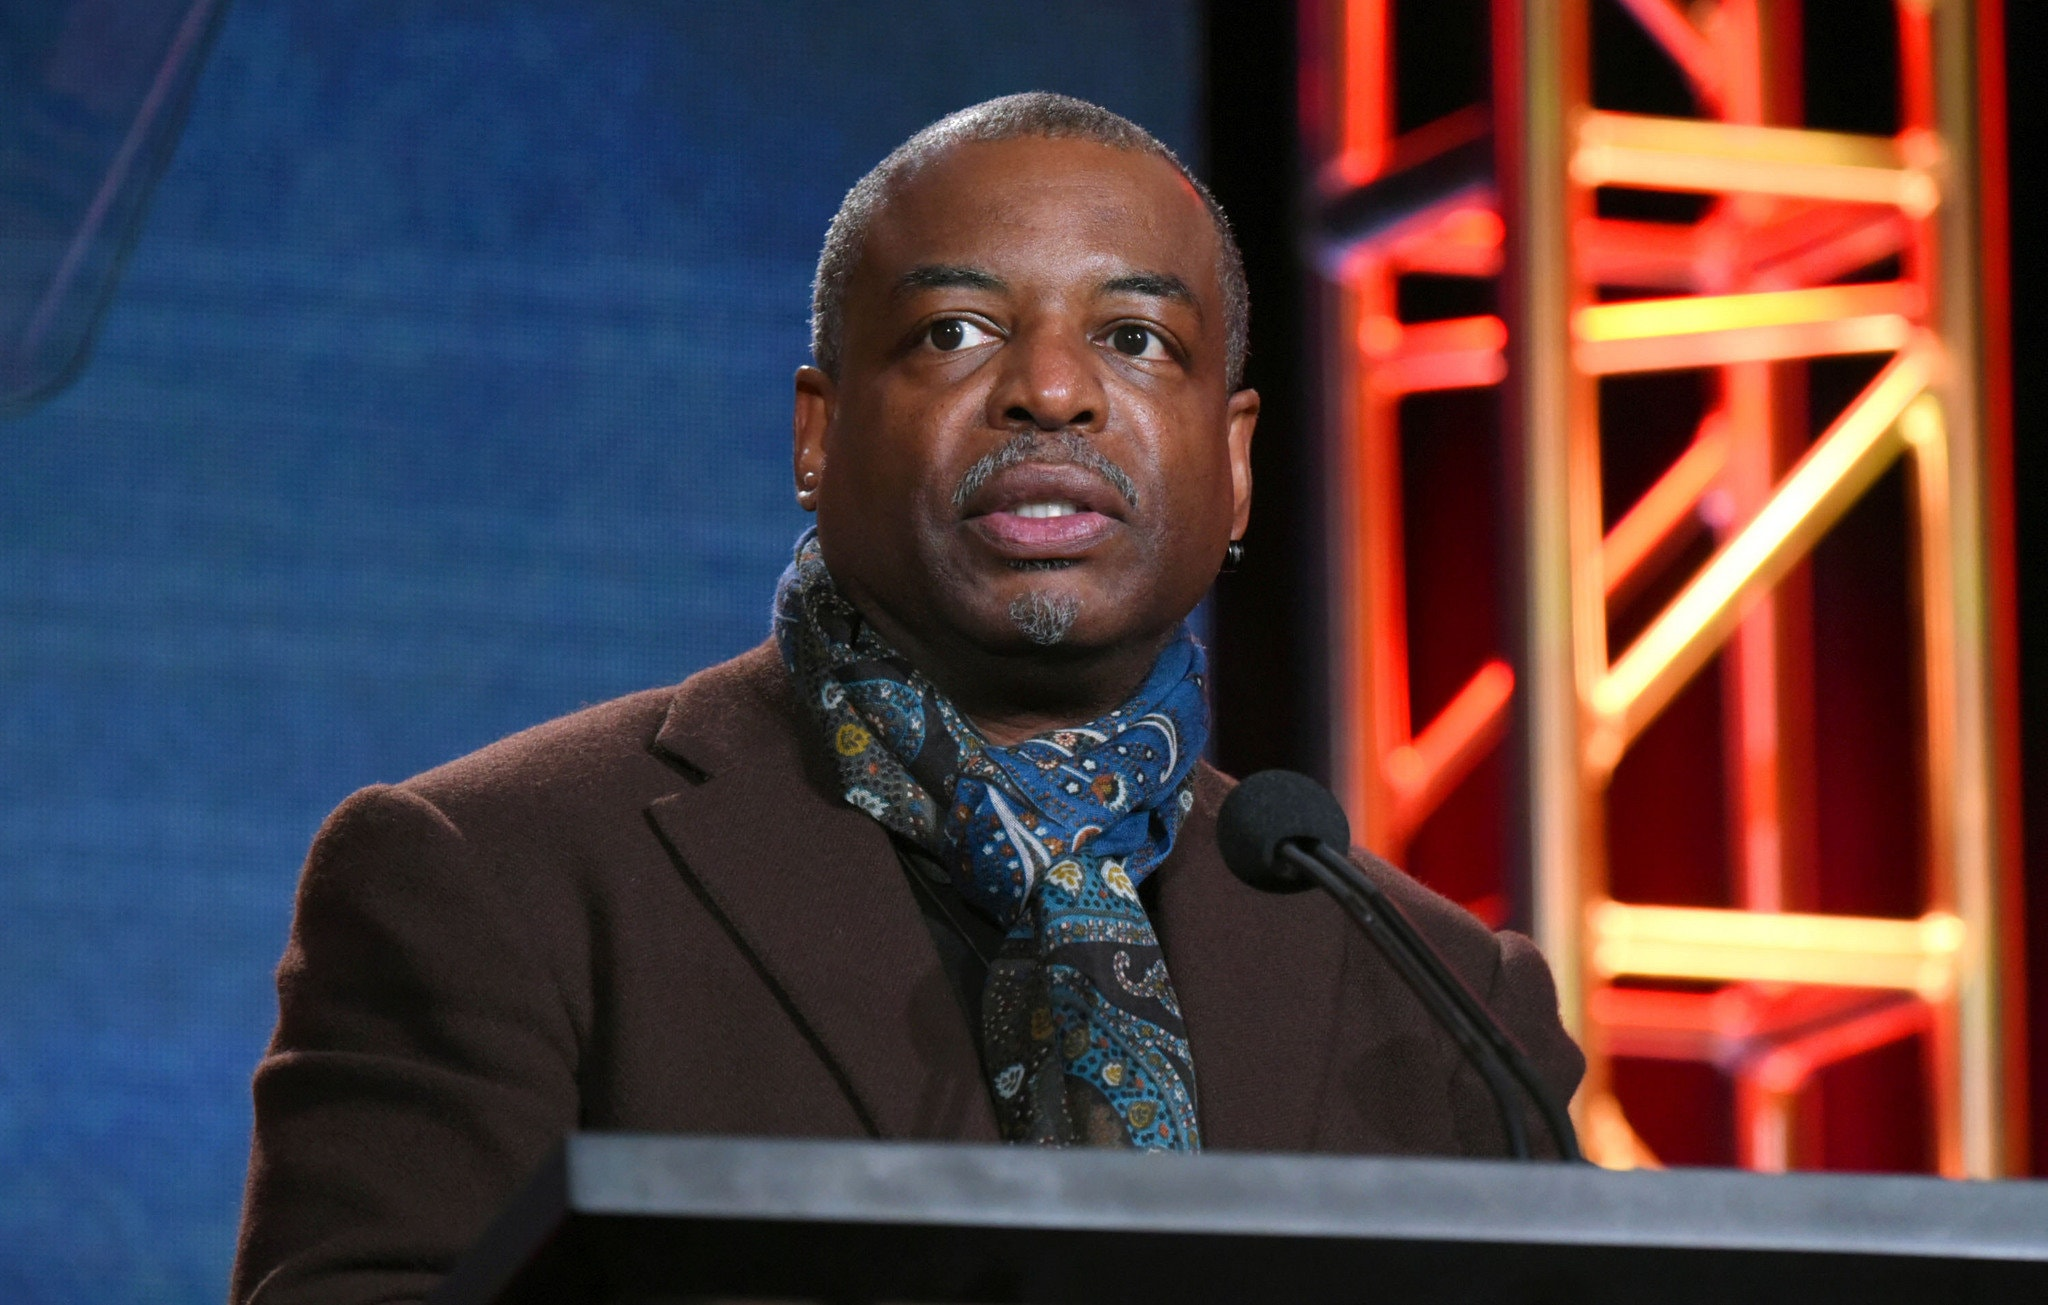 LeVar Burton Download